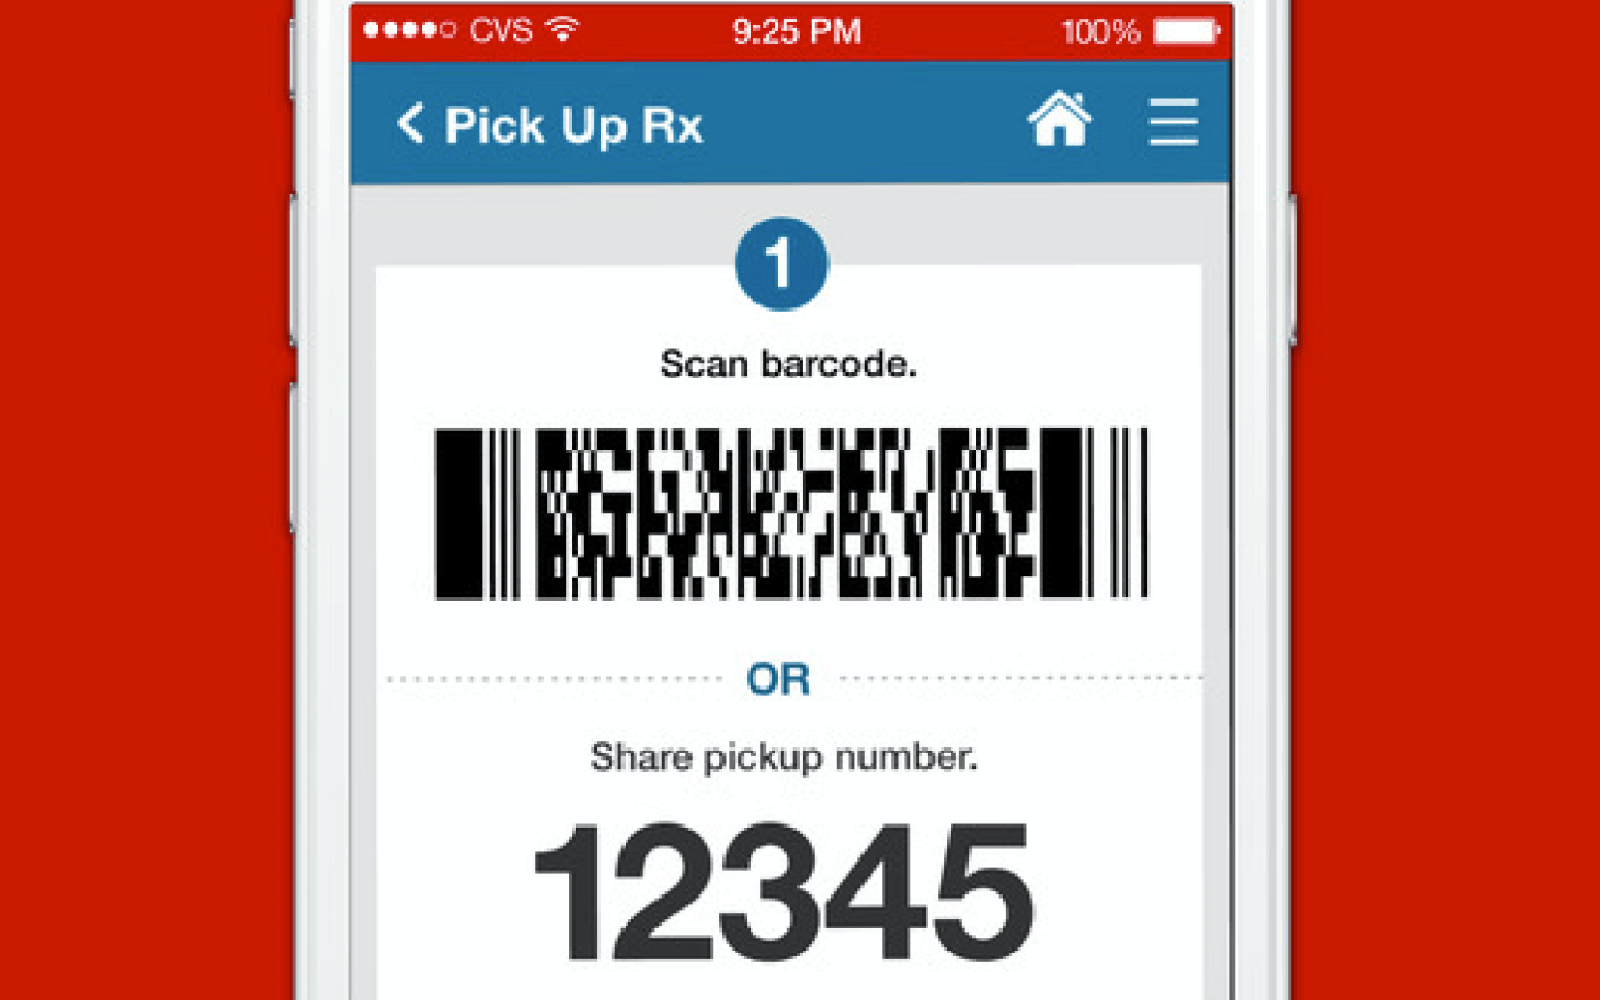 CVS introduces 'CVS Pay' barcode-based payment platform as